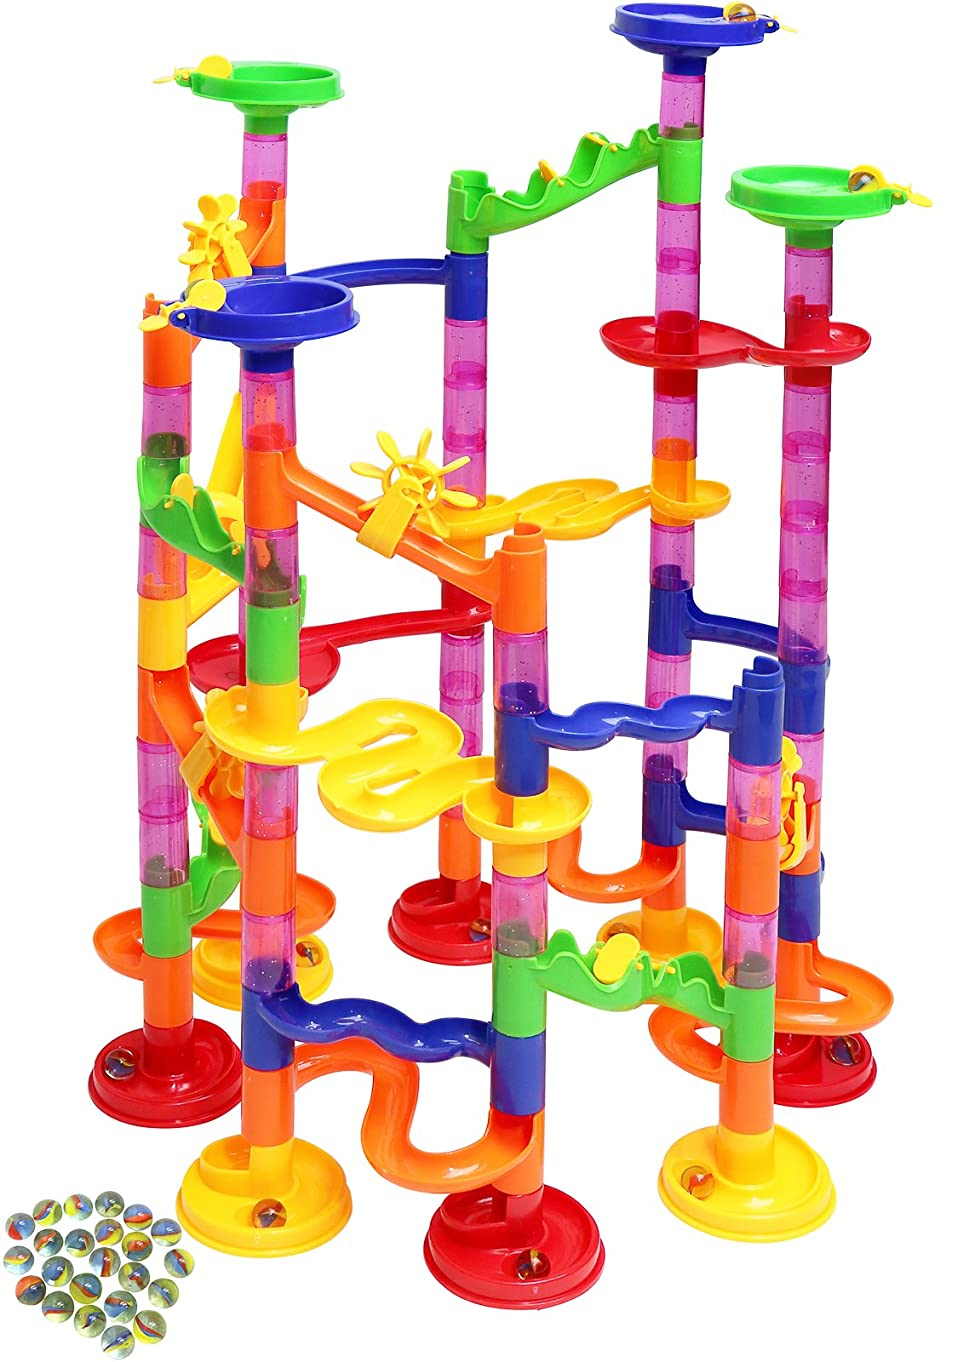 Kiddie Play Marble Run Set for Kids (75 Translucent Marbulous Pieces + 30 Glass Marbles)